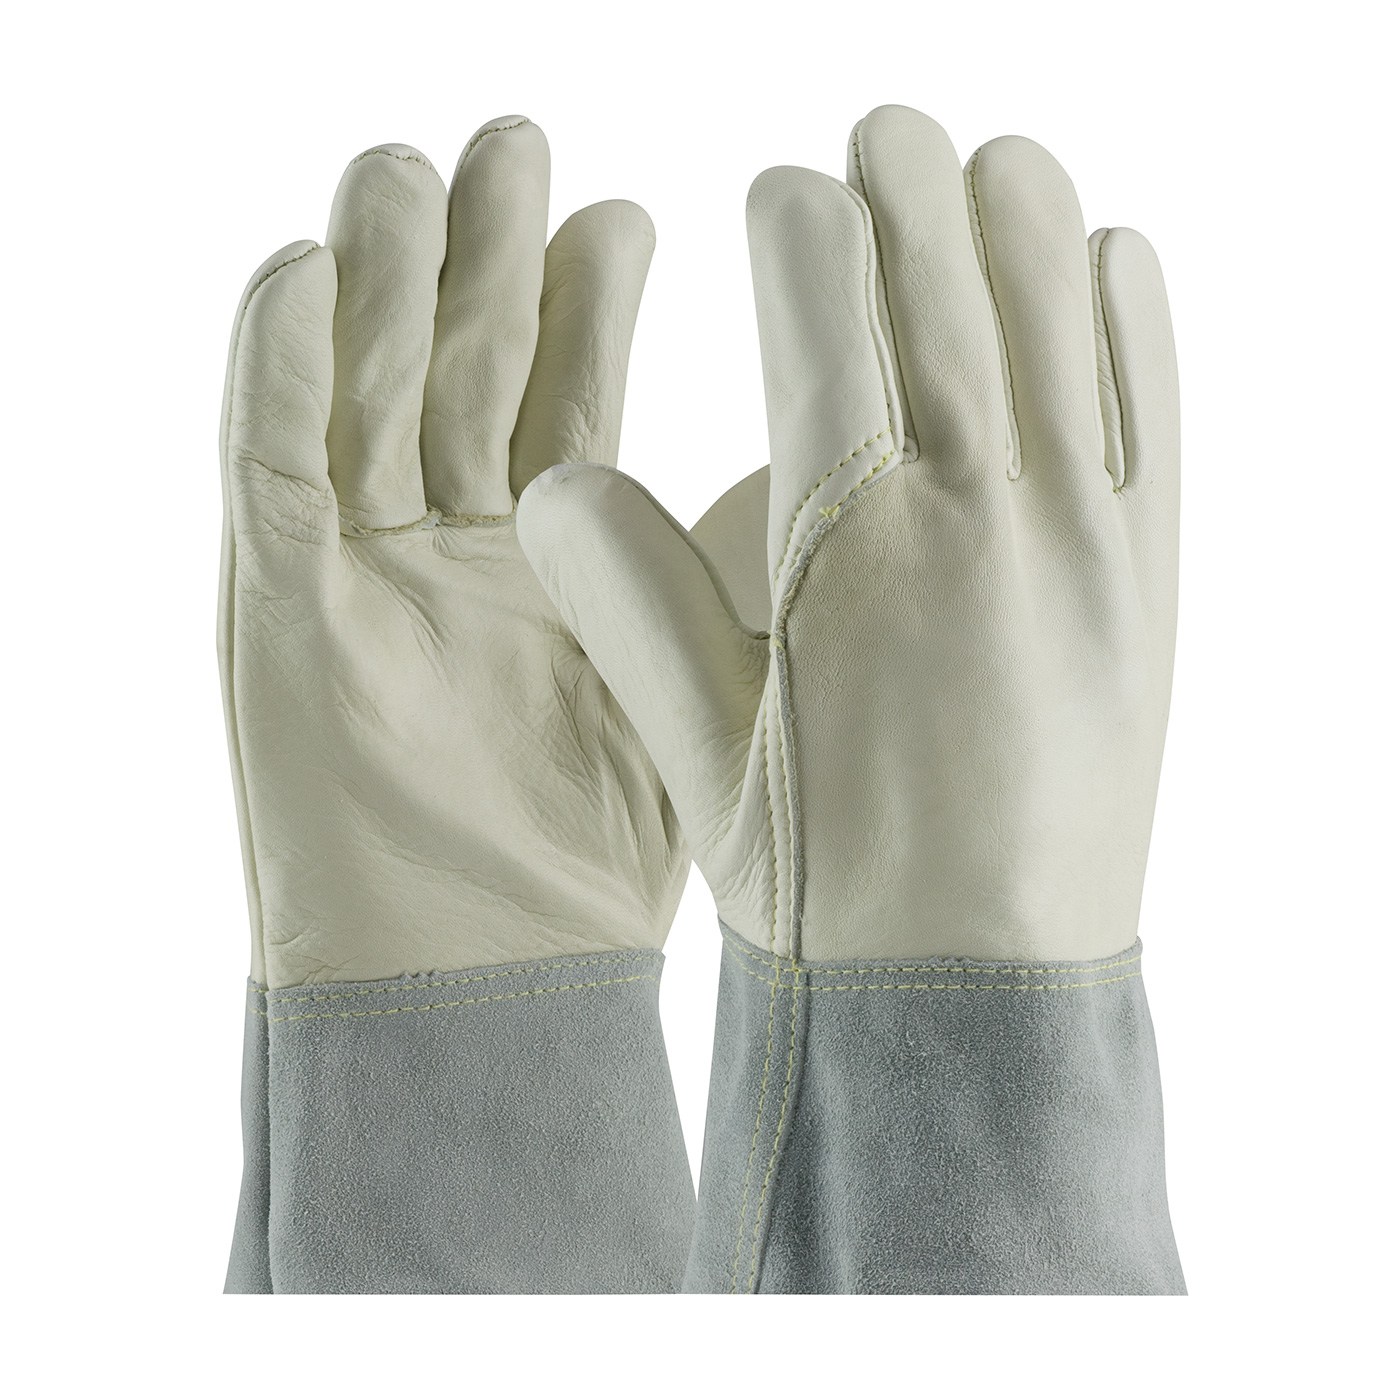 #75-2022 PIP® Top Grain  Cowhide Leather Mig Tig Welder's Gloves with Split Leather Band Top and Kevlar® Stitching